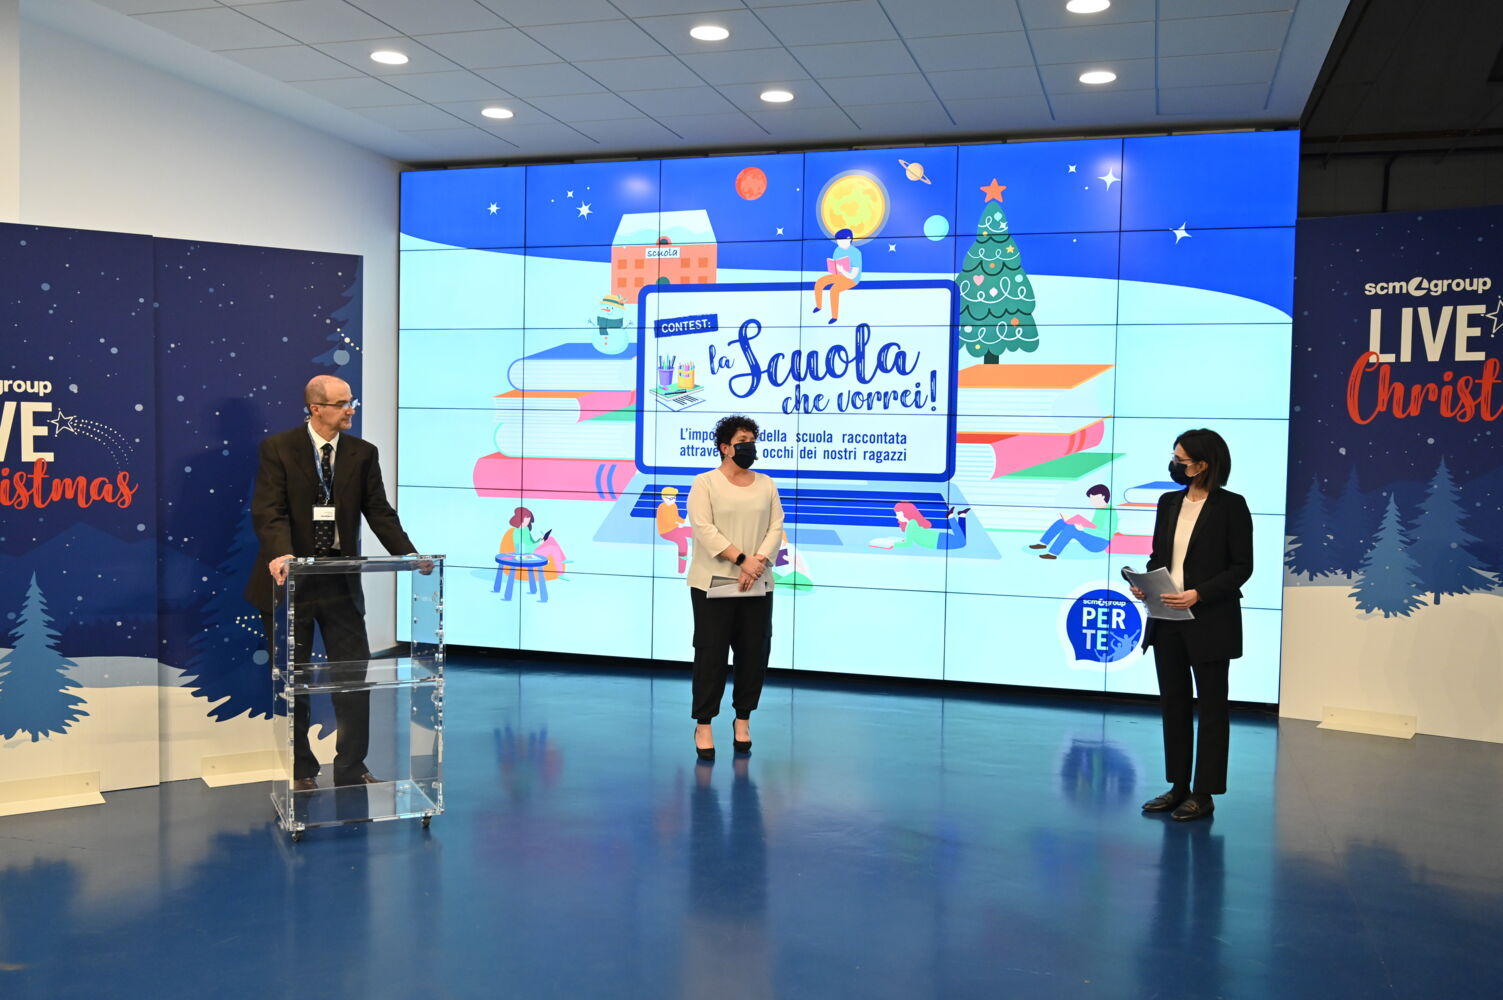 Scm Group Live Christmas: lots of new features for the pre-Christmas event at the Italian plants